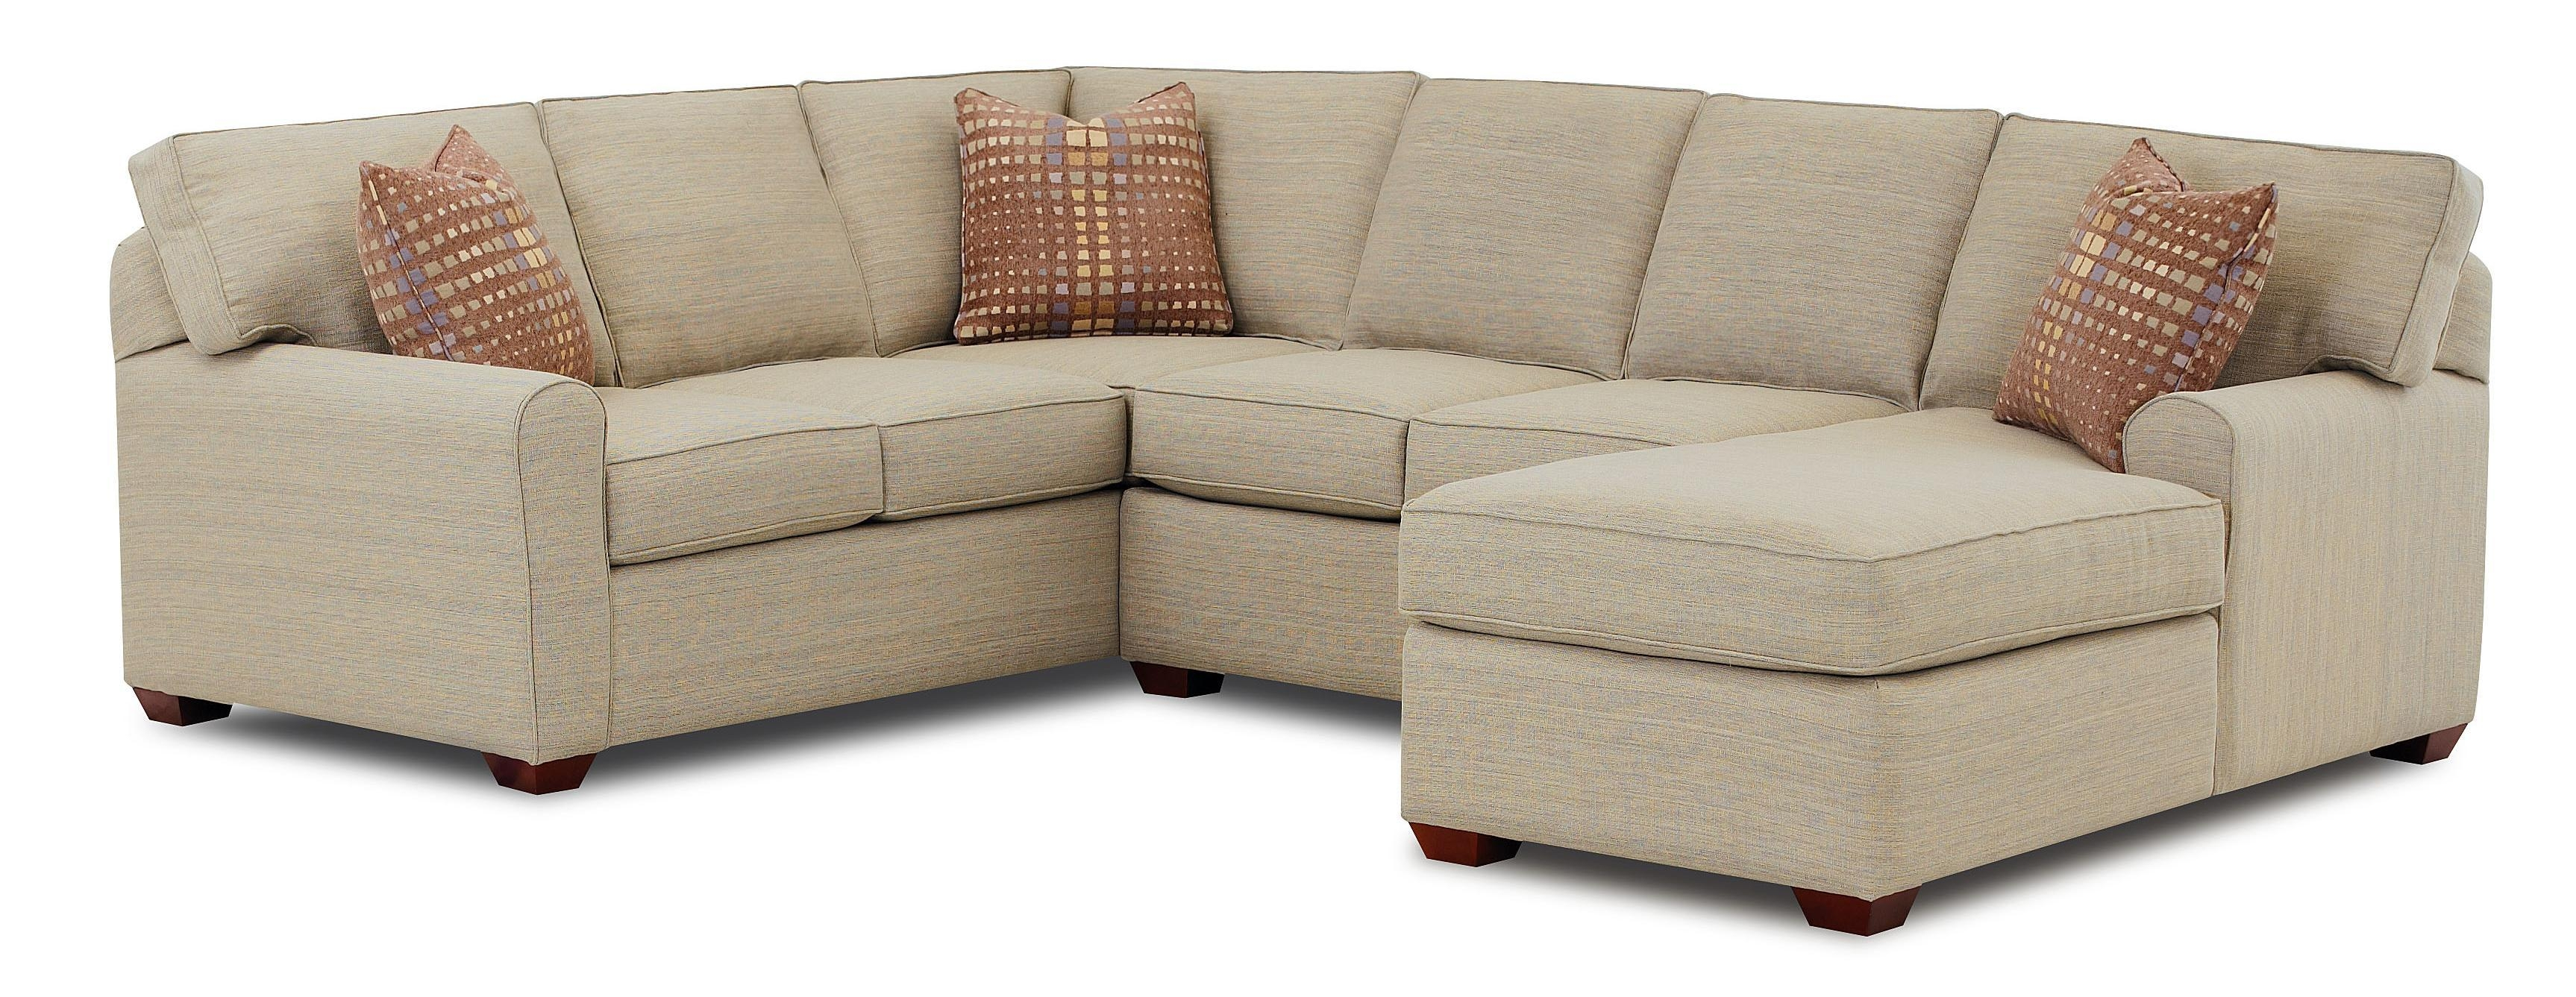 Sectional Sofa With Right Facing Chaise Loungeklaussner | Wolf Within Sofas With Chaise Longue (Image 13 of 20)